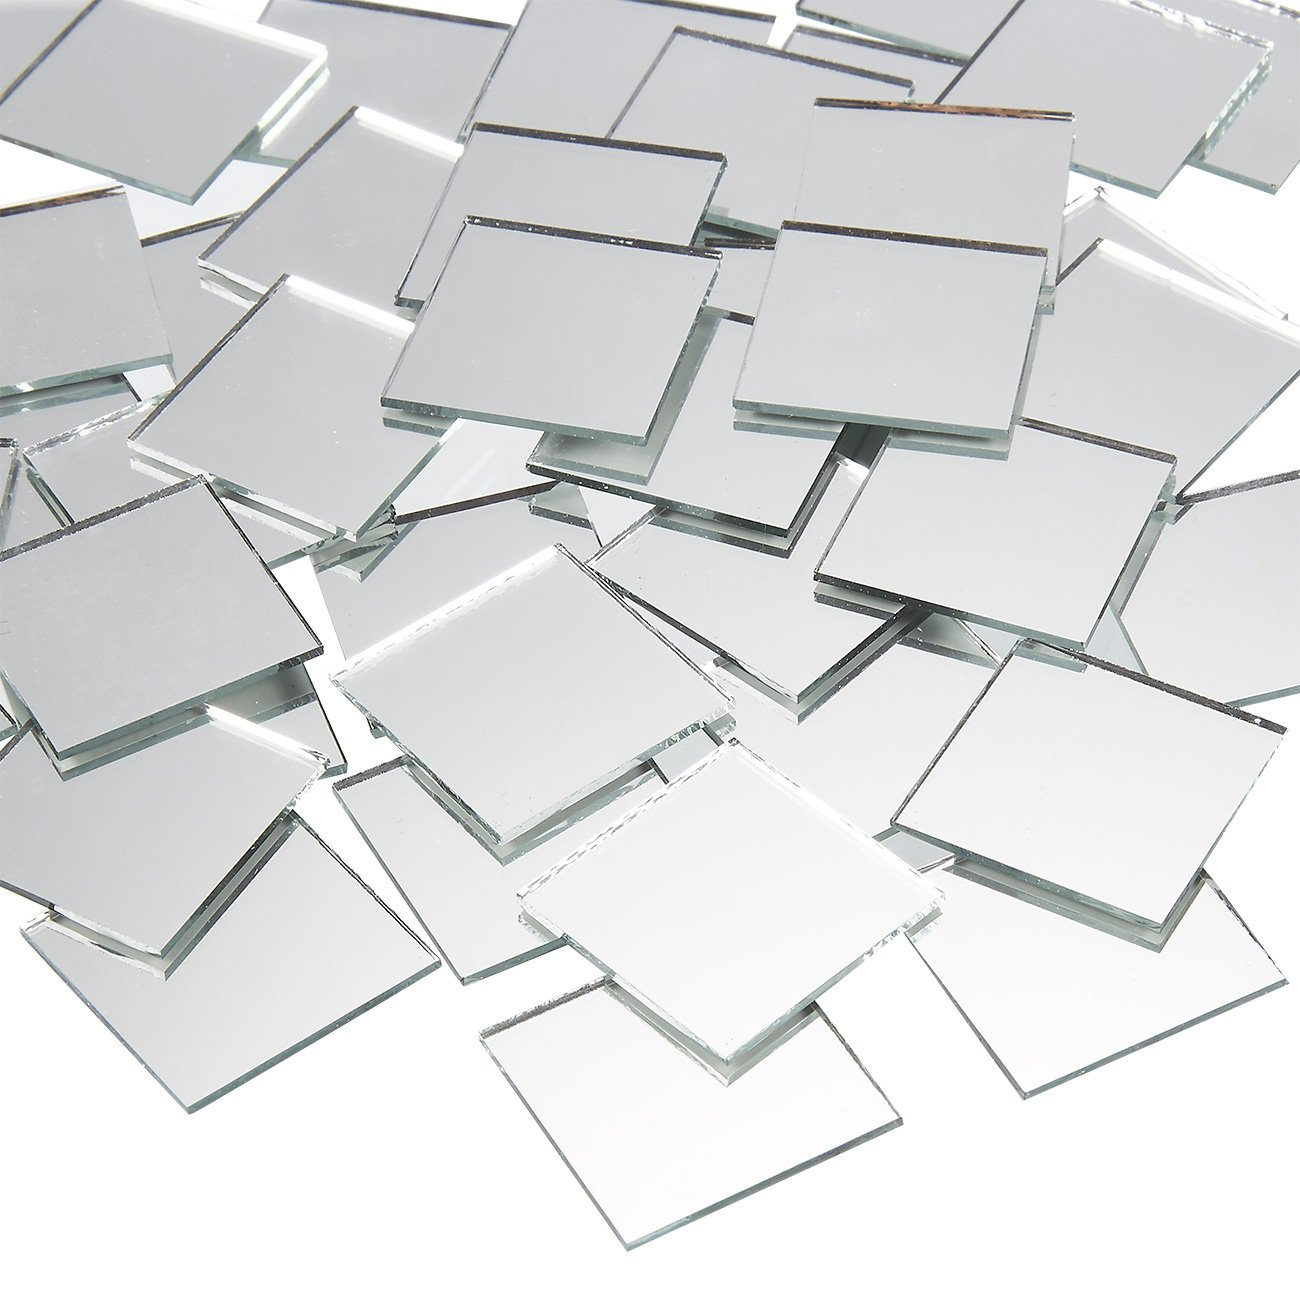 Craft Mirrors - 120-Pack Bulk Square Mirror Tiles - 1x1 Inch Glass Mosaic Tiles